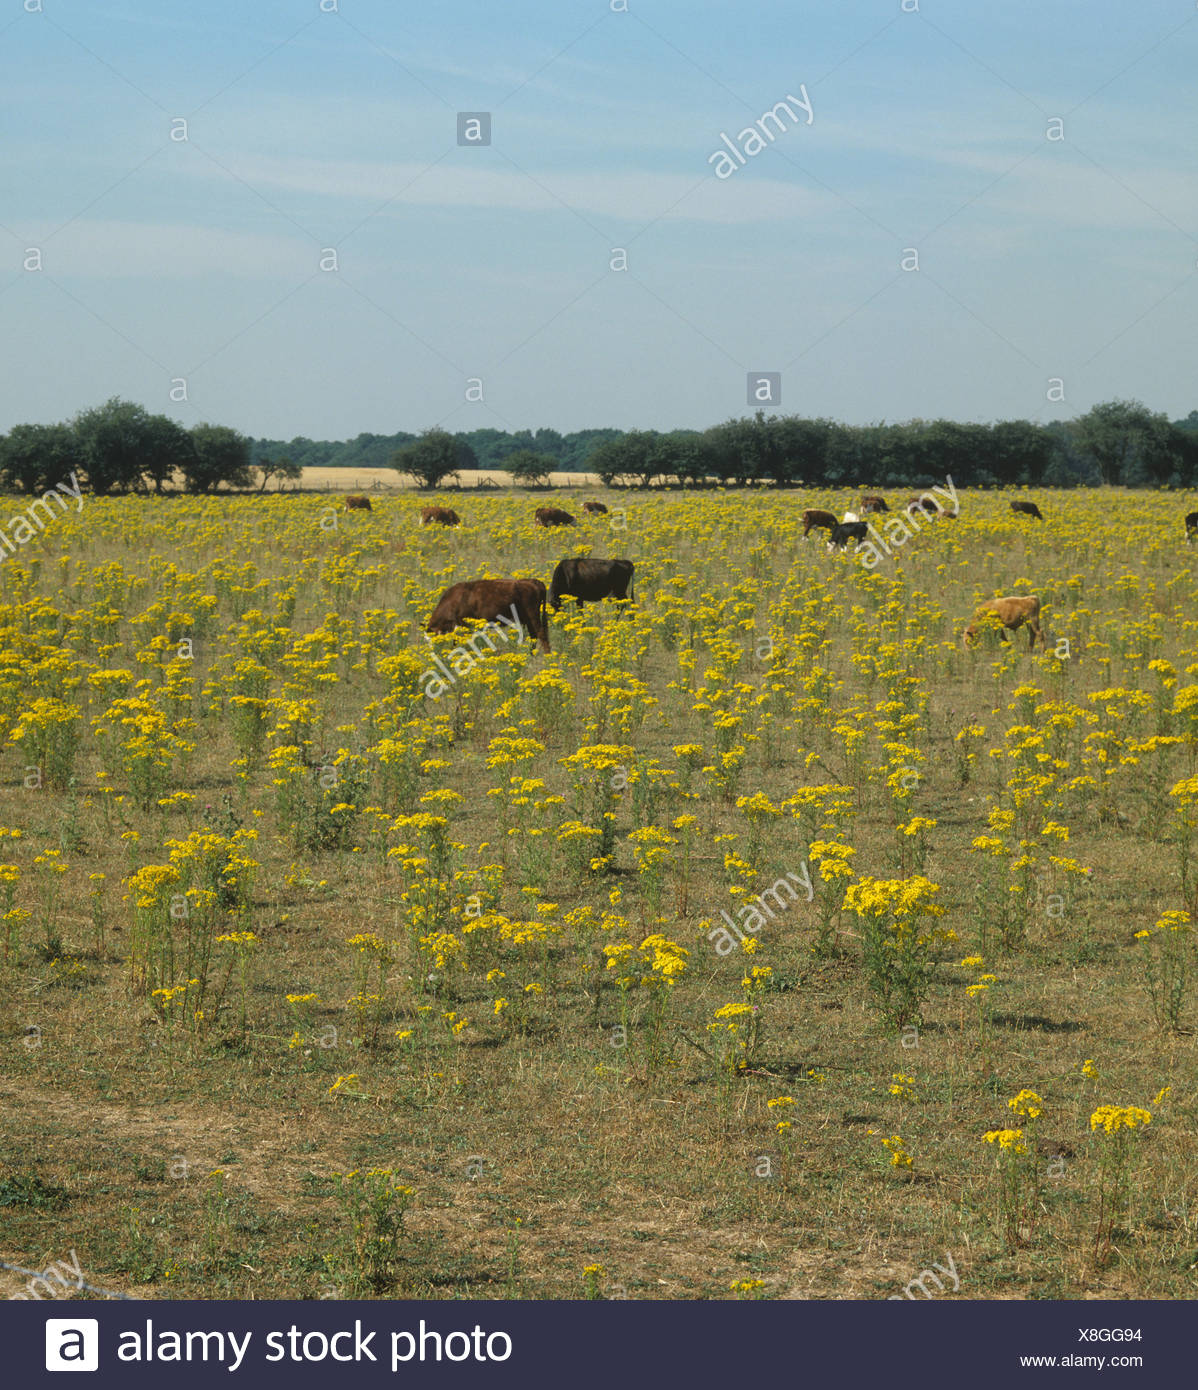 Ragwort (Jacobaea vulgaris) flowering in dry pasture with cattle grazing around the toxic plants - Stock Image